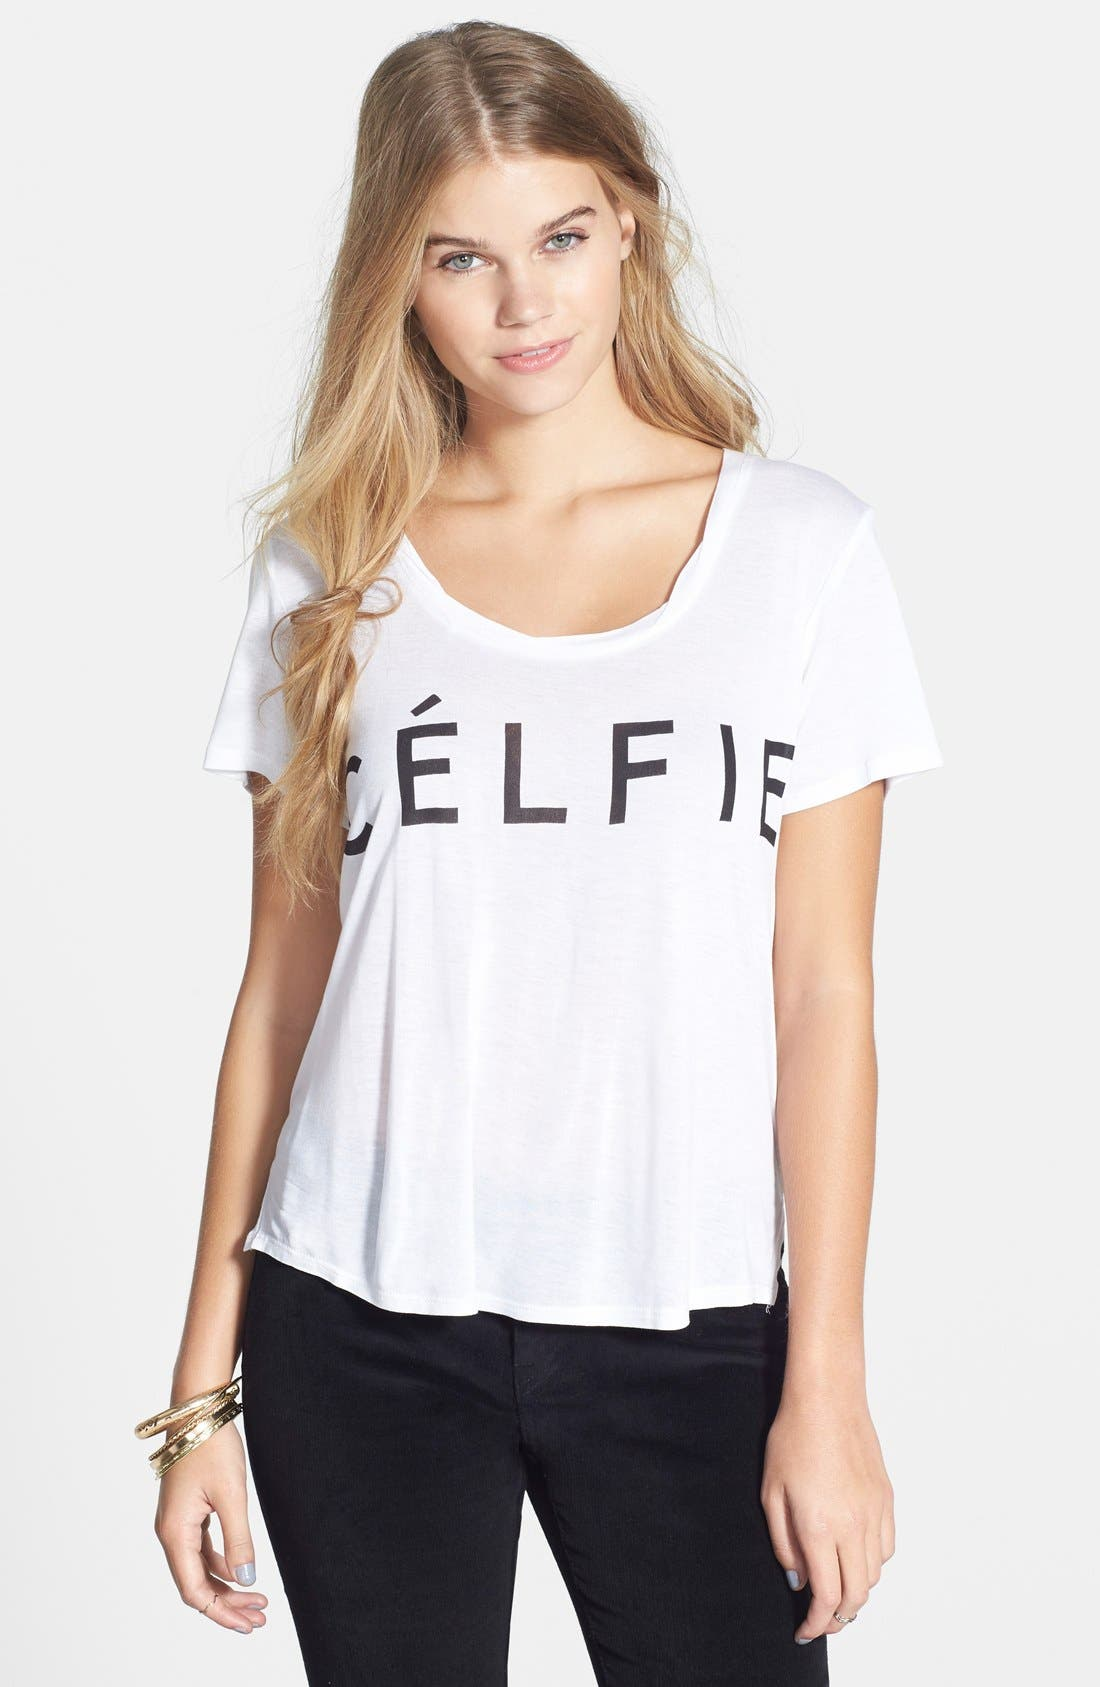 Main Image - Recycled Karma 'Célfie' Graphic Tee (Juniors)